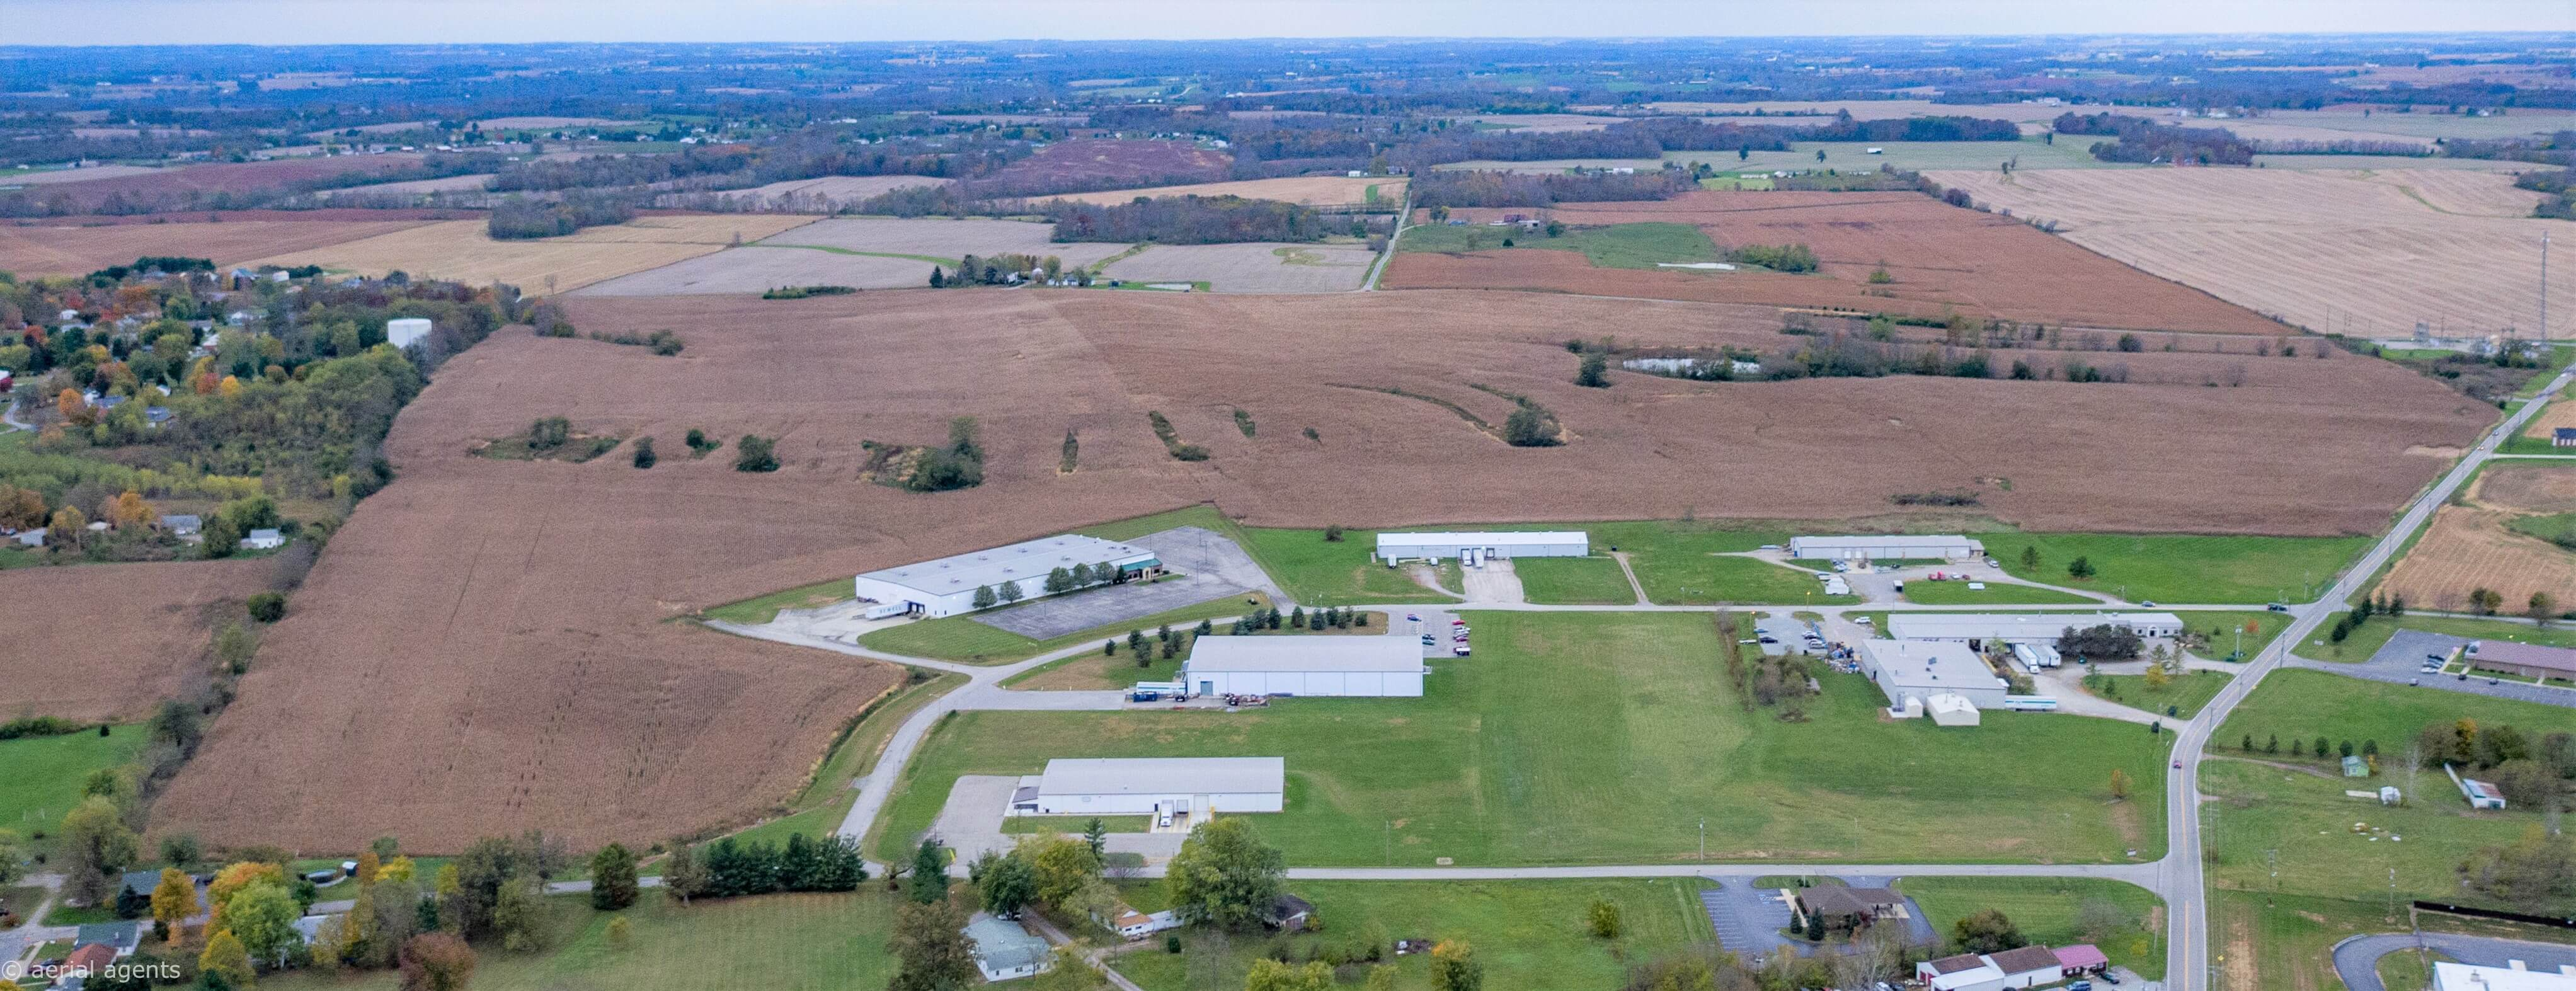 South Central Ohio Industrial Park Overview Image